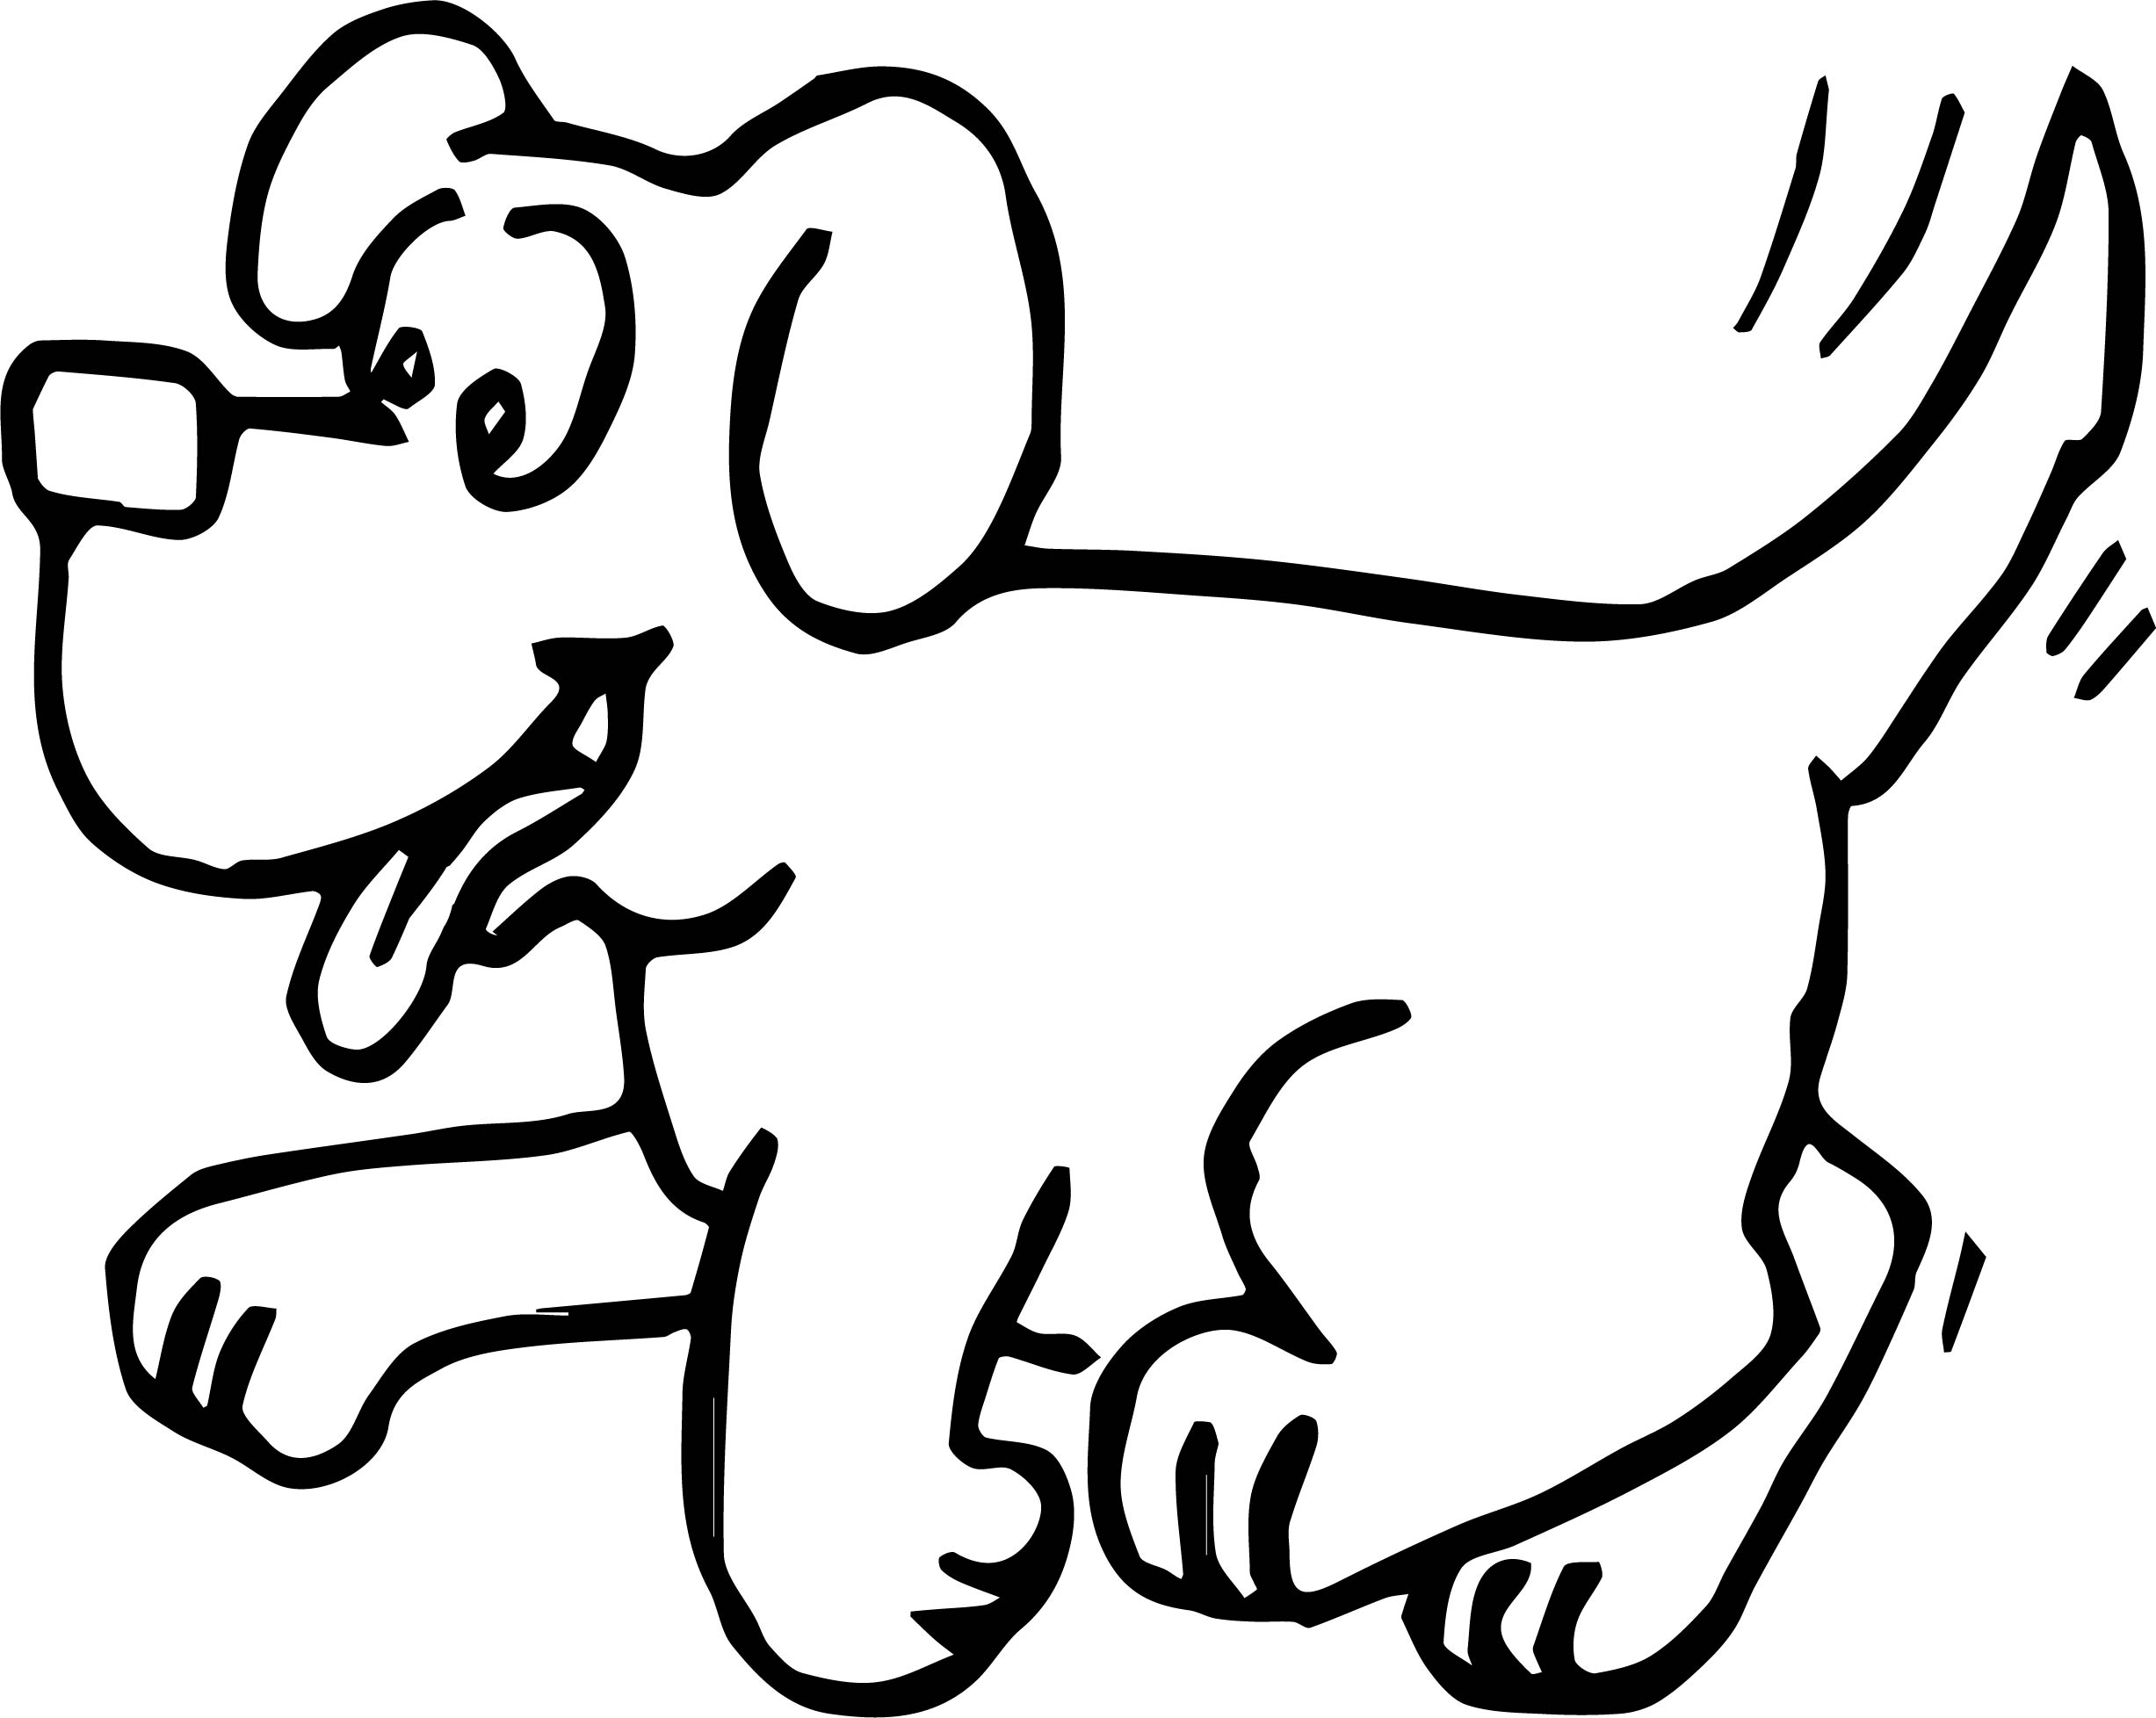 Dog Body Language Coloring Page for Children  Sarah Wilson